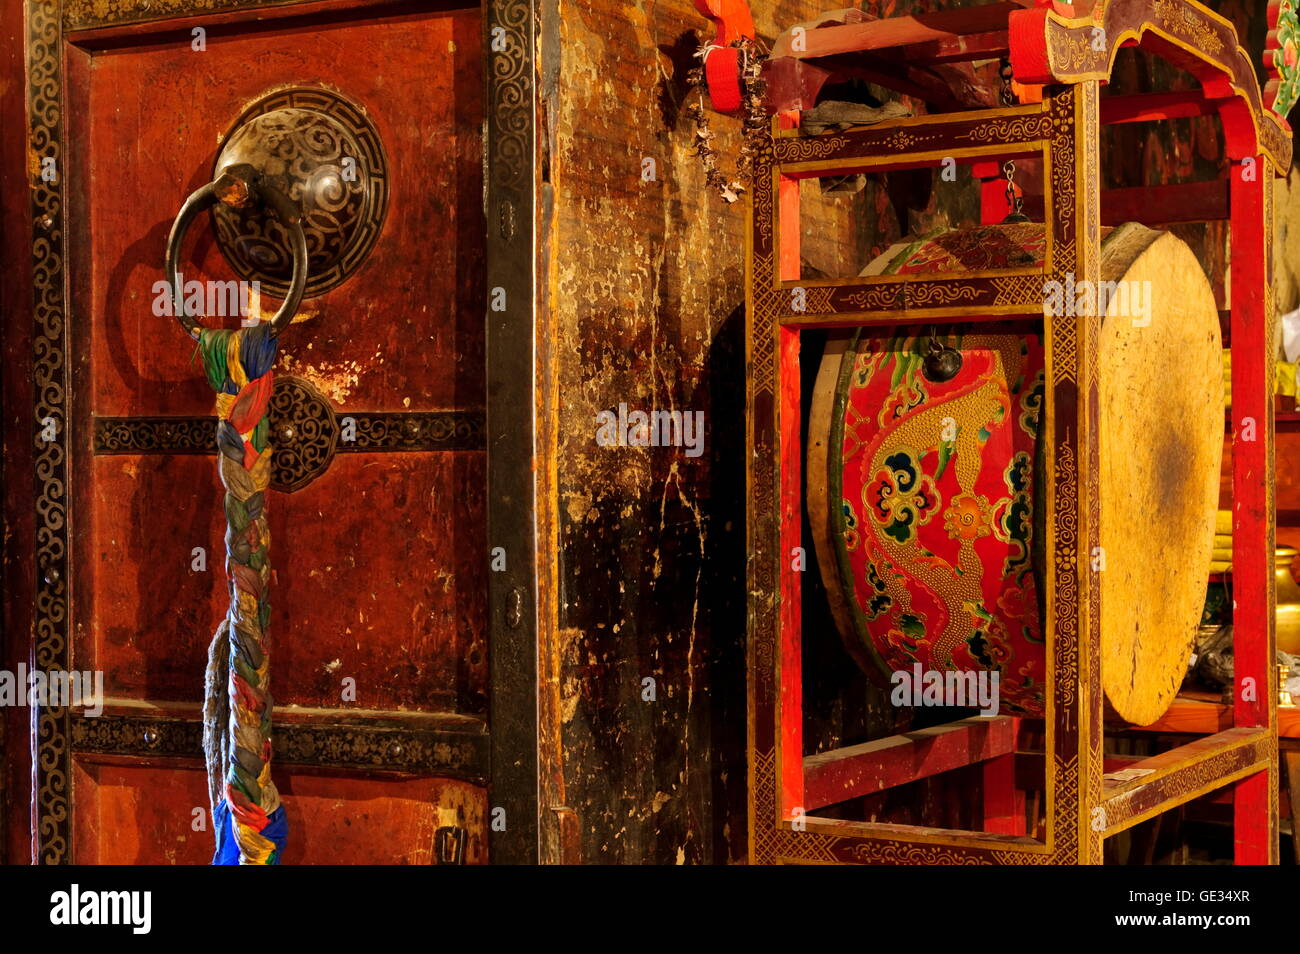 geography / travel, China, Tibet, Gyantse, drum for prayers, Additional-Rights-Clearance-Info-Not-Available - Stock Image